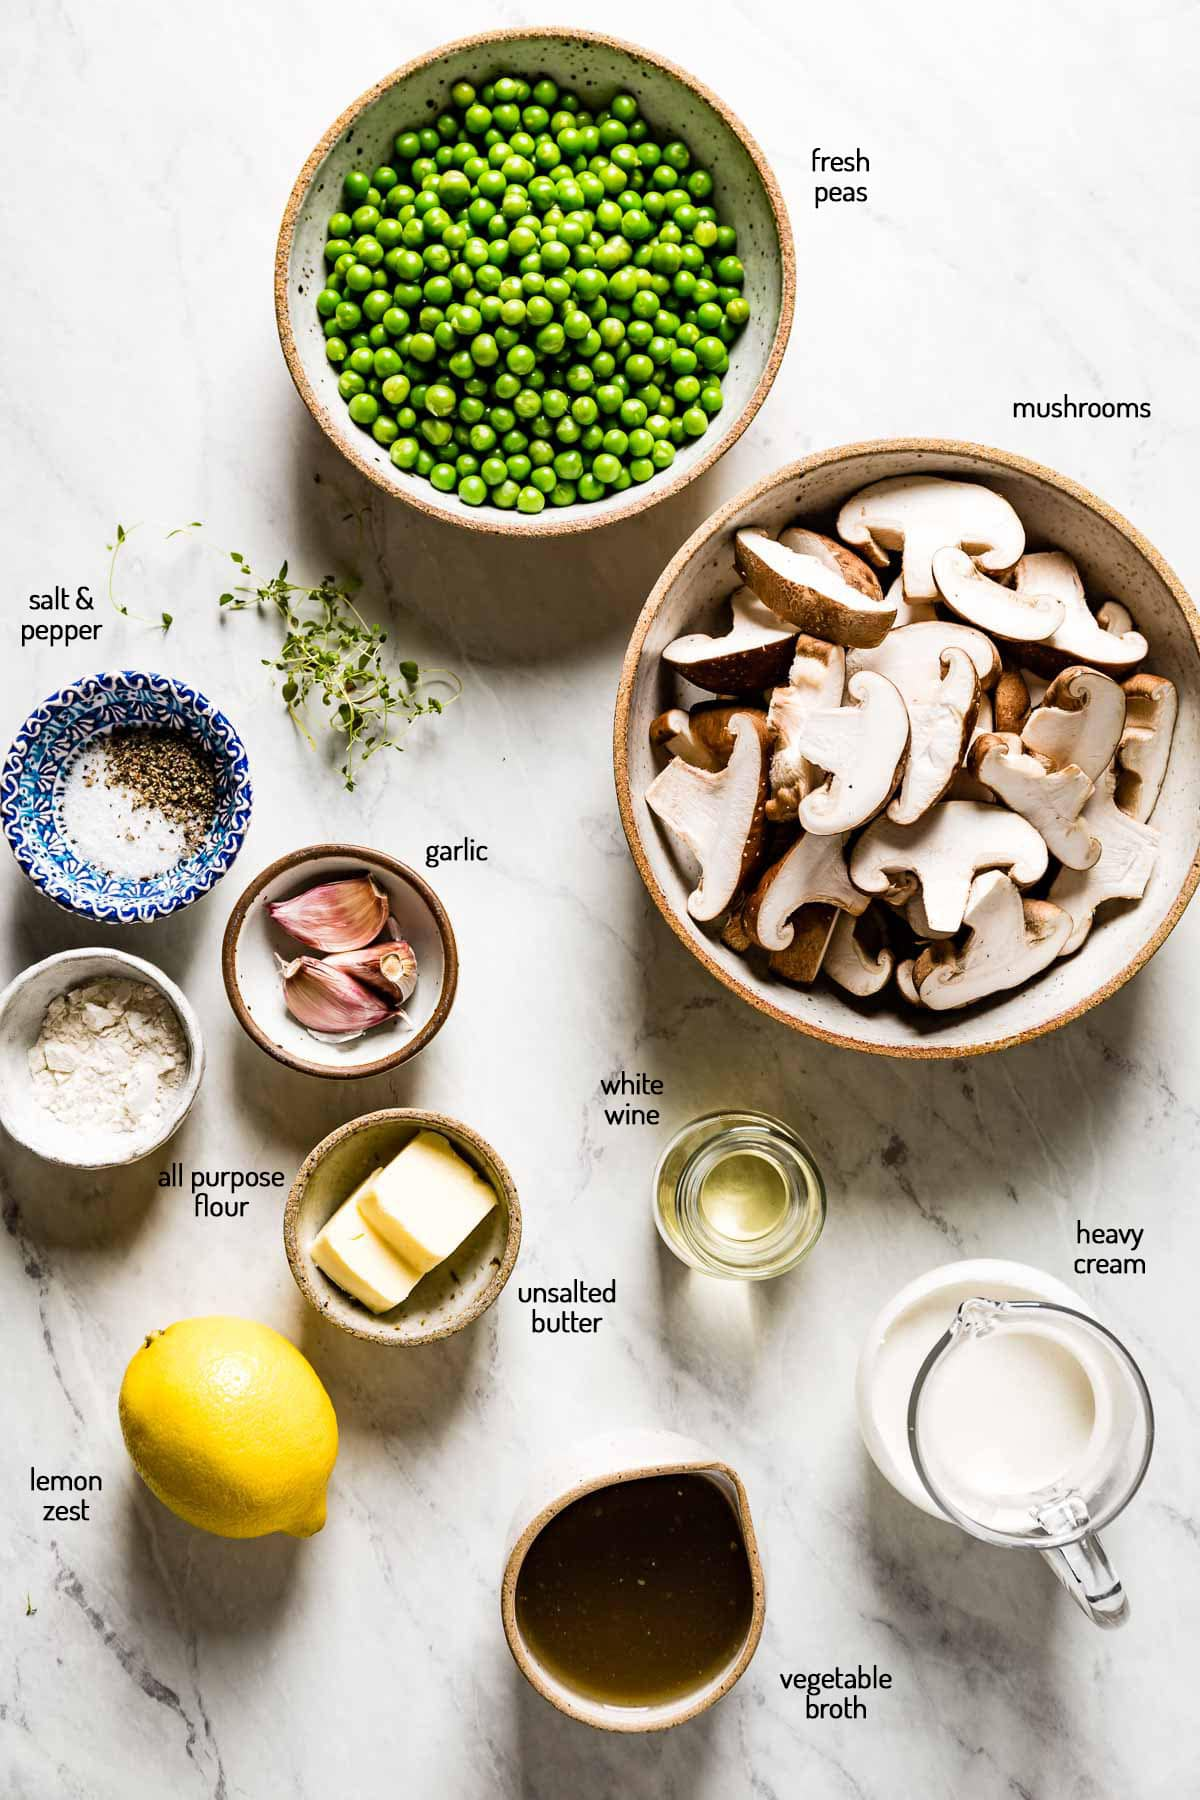 Ingredients for the recipe laid out on a marble backdrop